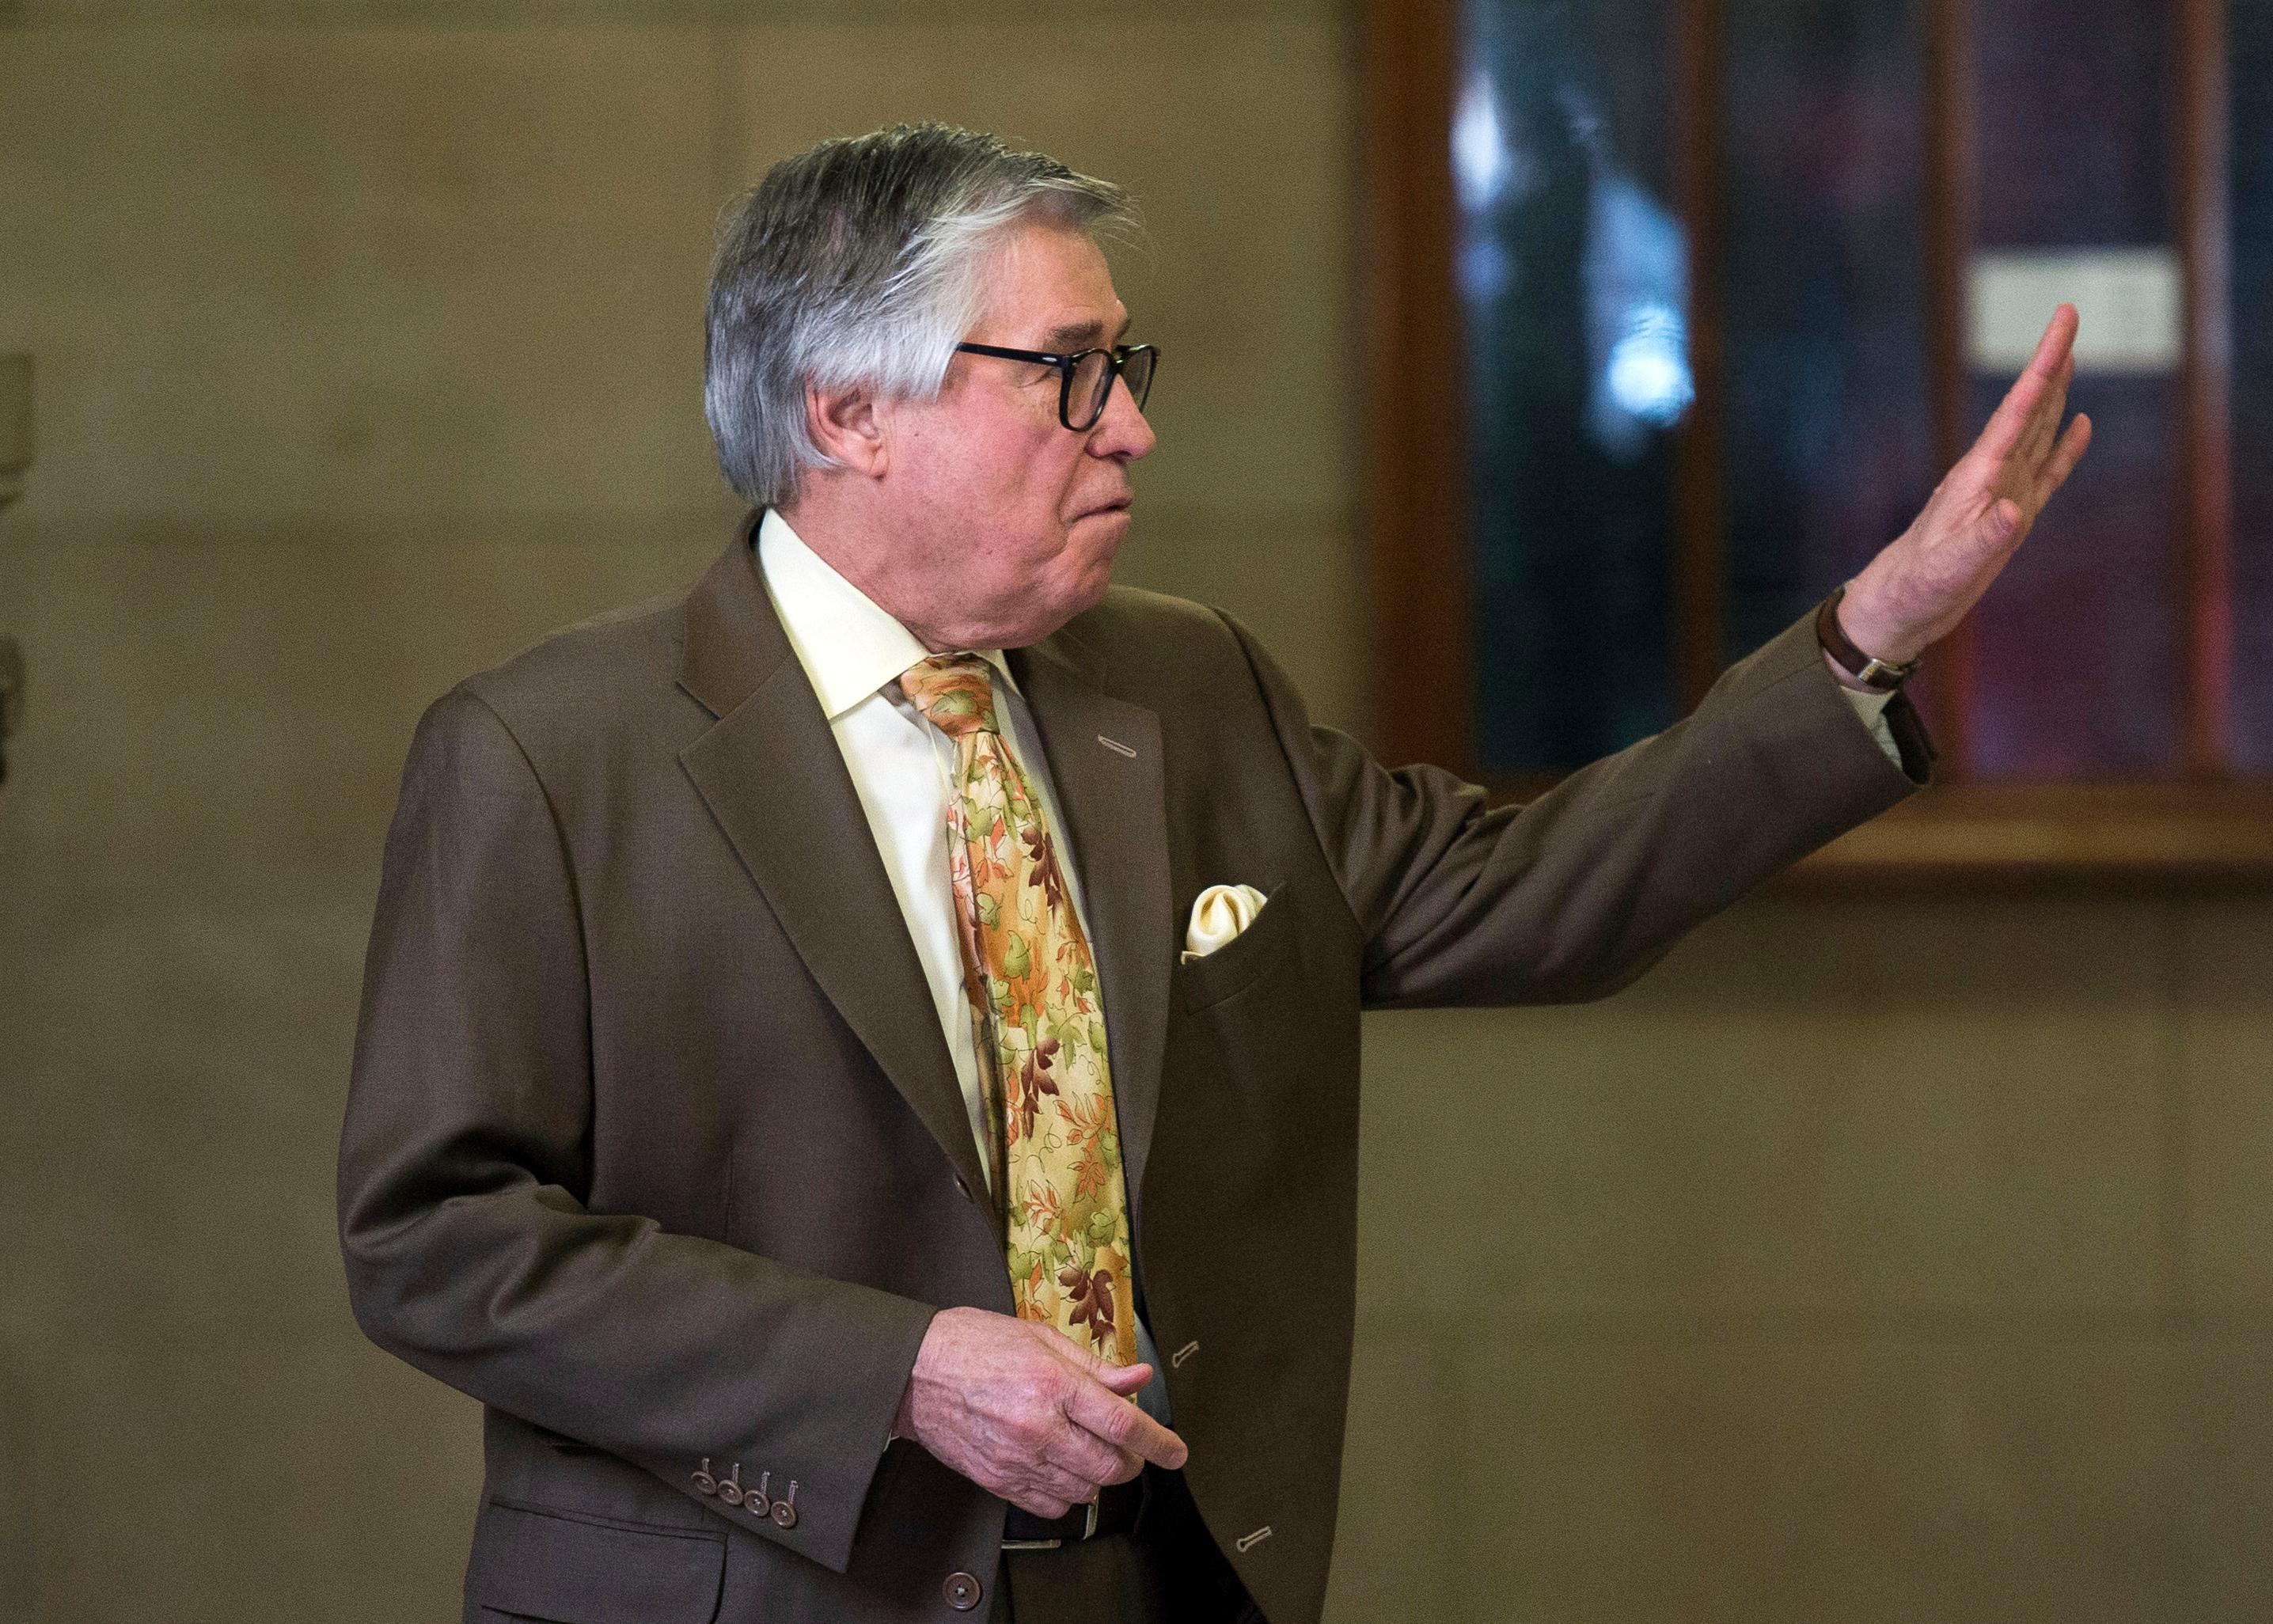 Michael Rosfeld's attorney, Patrick Thomassey, waves to an acquaintance inside Allegheny County Courthouse on a lunch break during the homicide trial of Rosfelt, the former East Pittsburgh police officer, Wednesday, March 20, 2019, Pittsburgh. Rosfeld, 30, faces a charge of criminal homicide for the June 2018 death of 17-year-old unarmed black high school student Antwon Rose II. (Nate Smallwood//Pittsburgh Tribune-Review via AP, Pool)